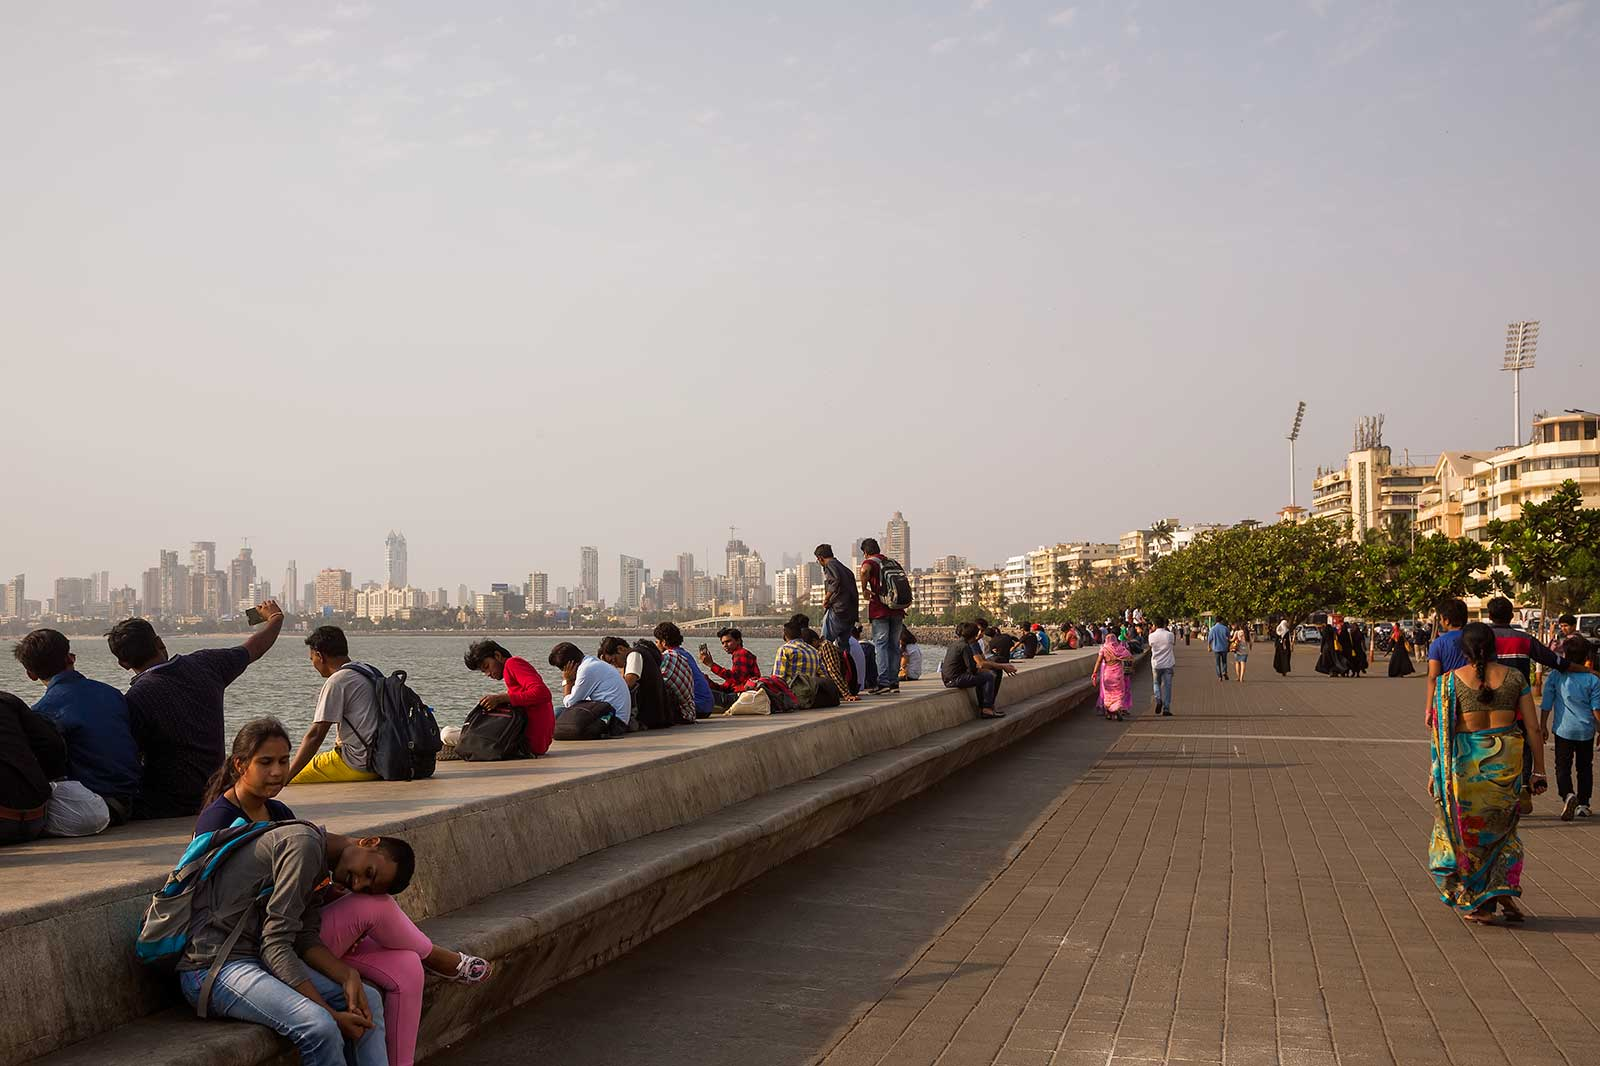 You'll get an amazing view of Mumbai's skyline when walking along Marine Drive.